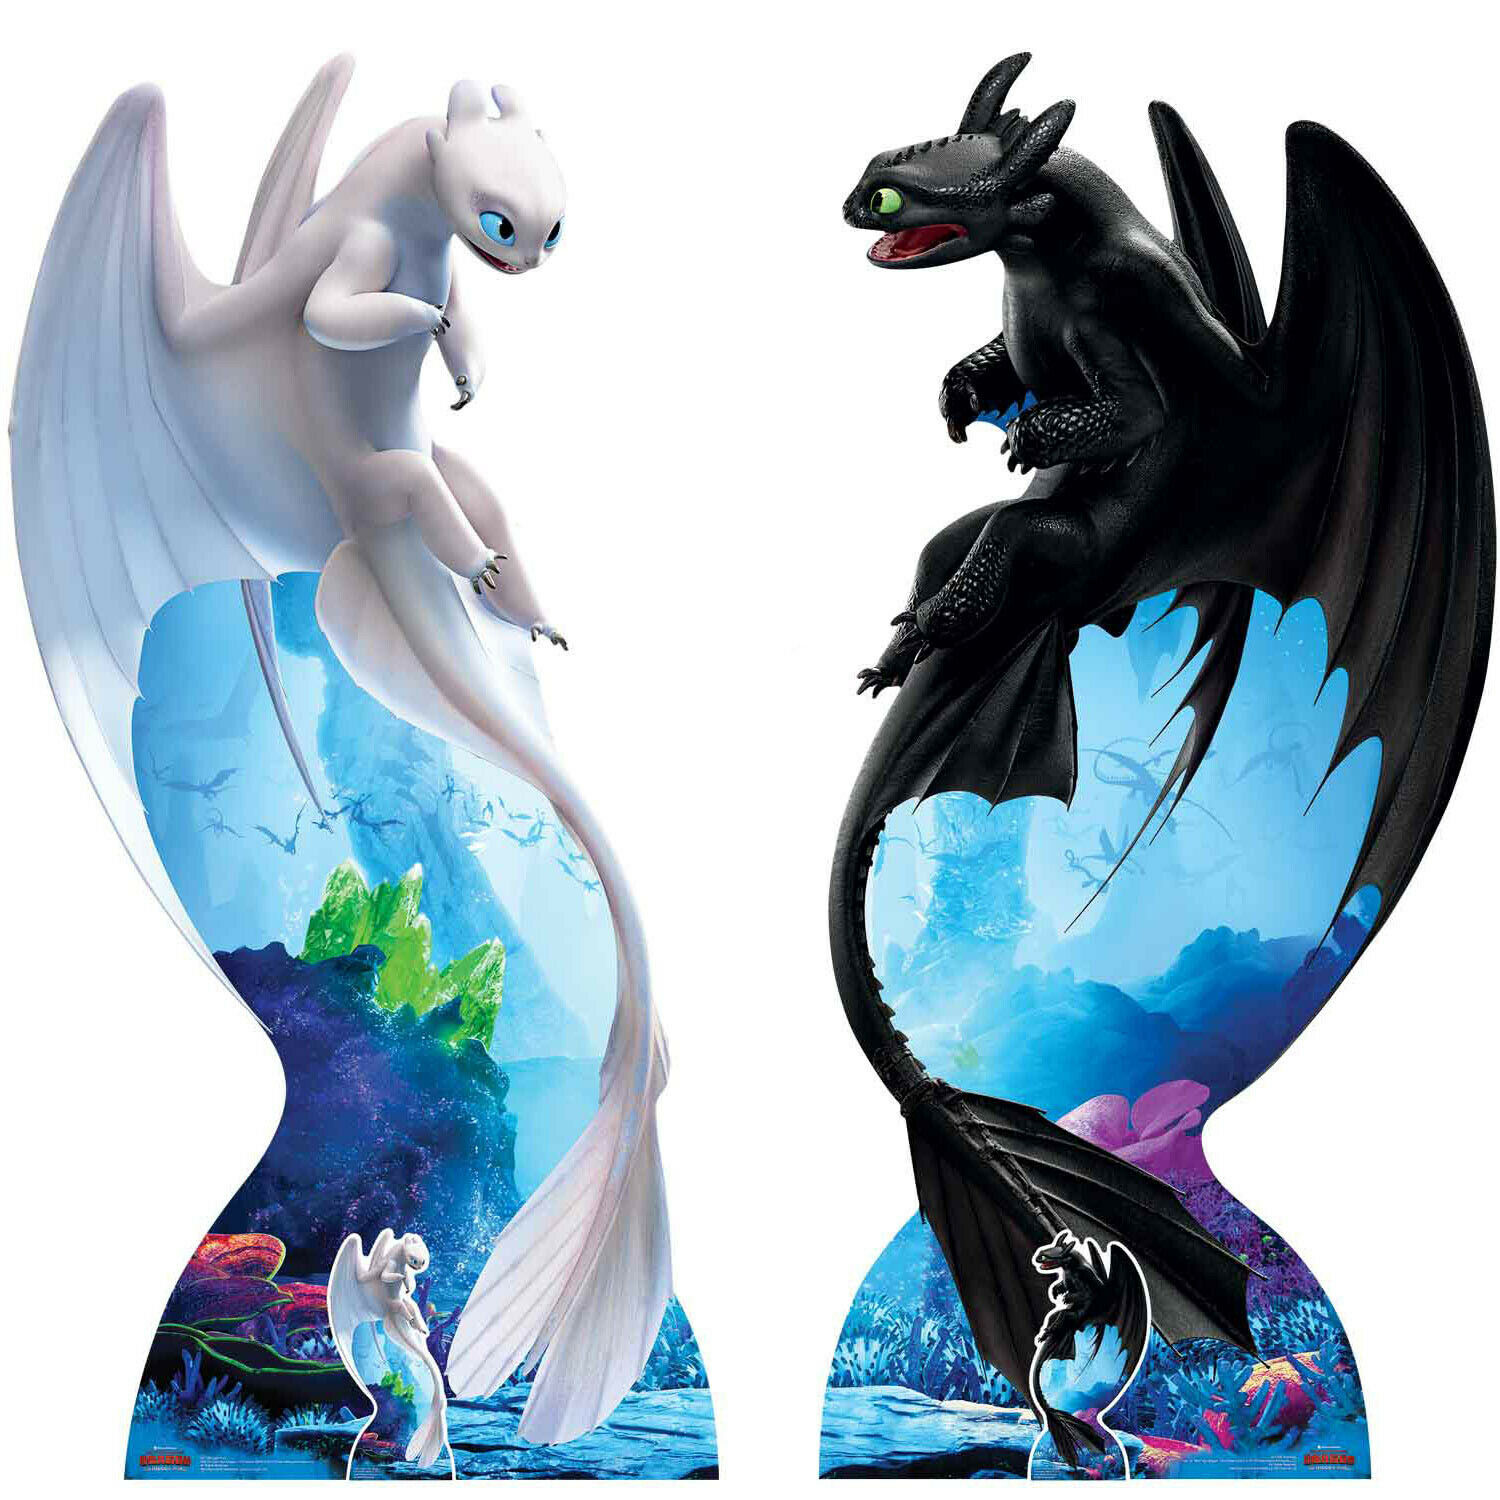 Toothless and Light Fury How to Train Your Dragon 3 Cardboard Cutouts - Set of 2